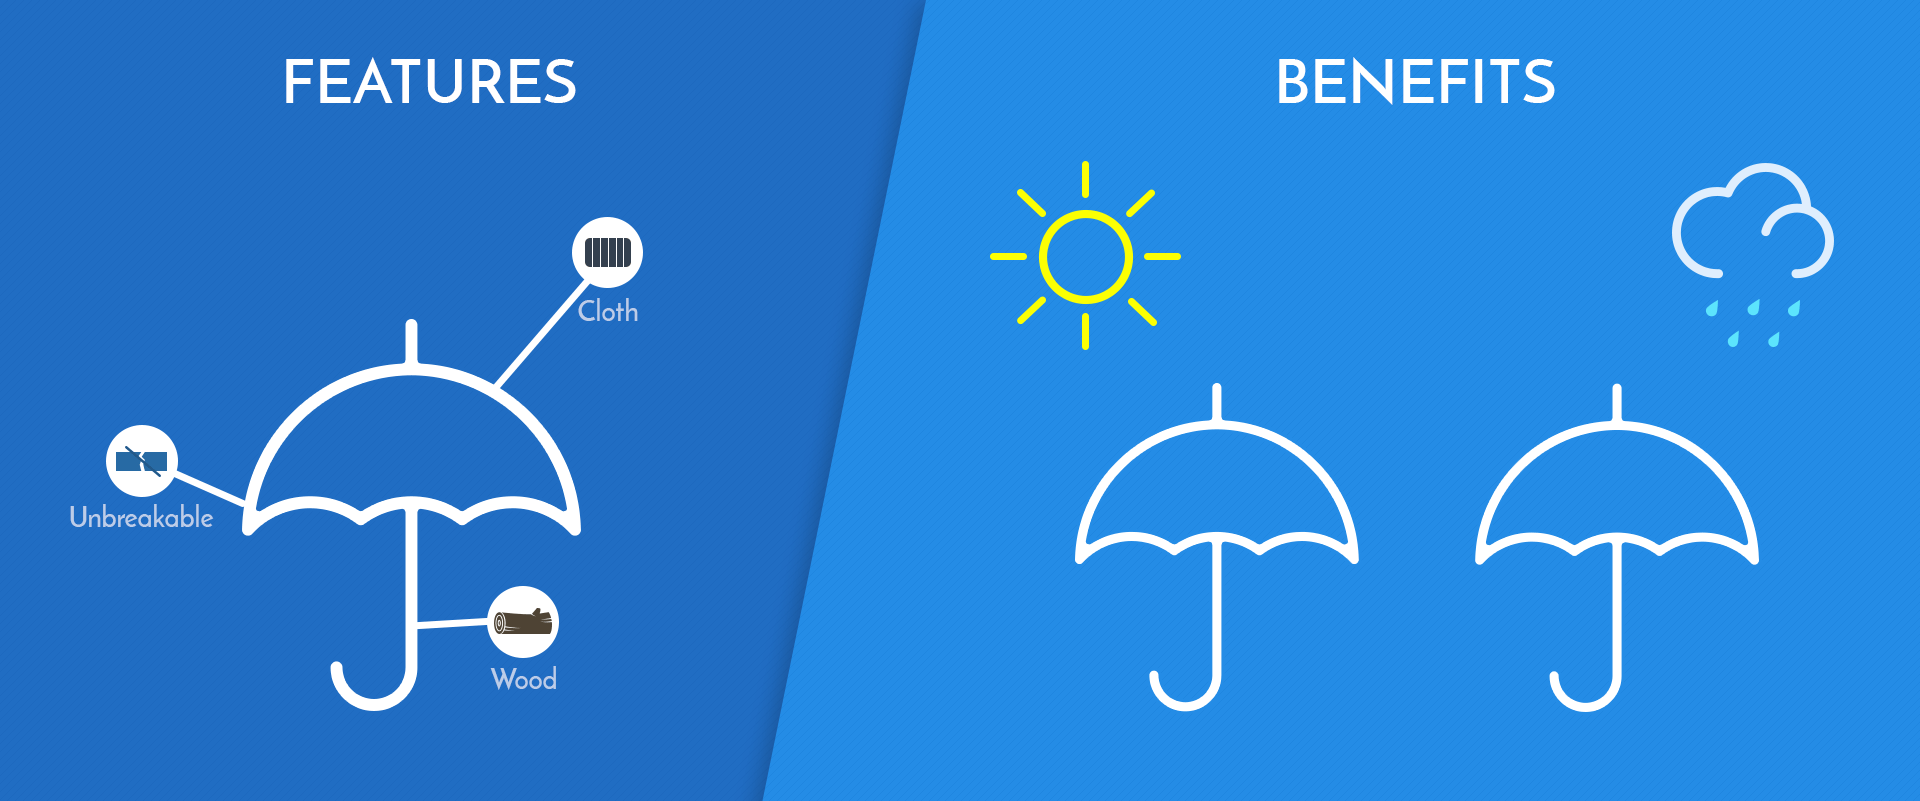 Features vs benefits umbrella example